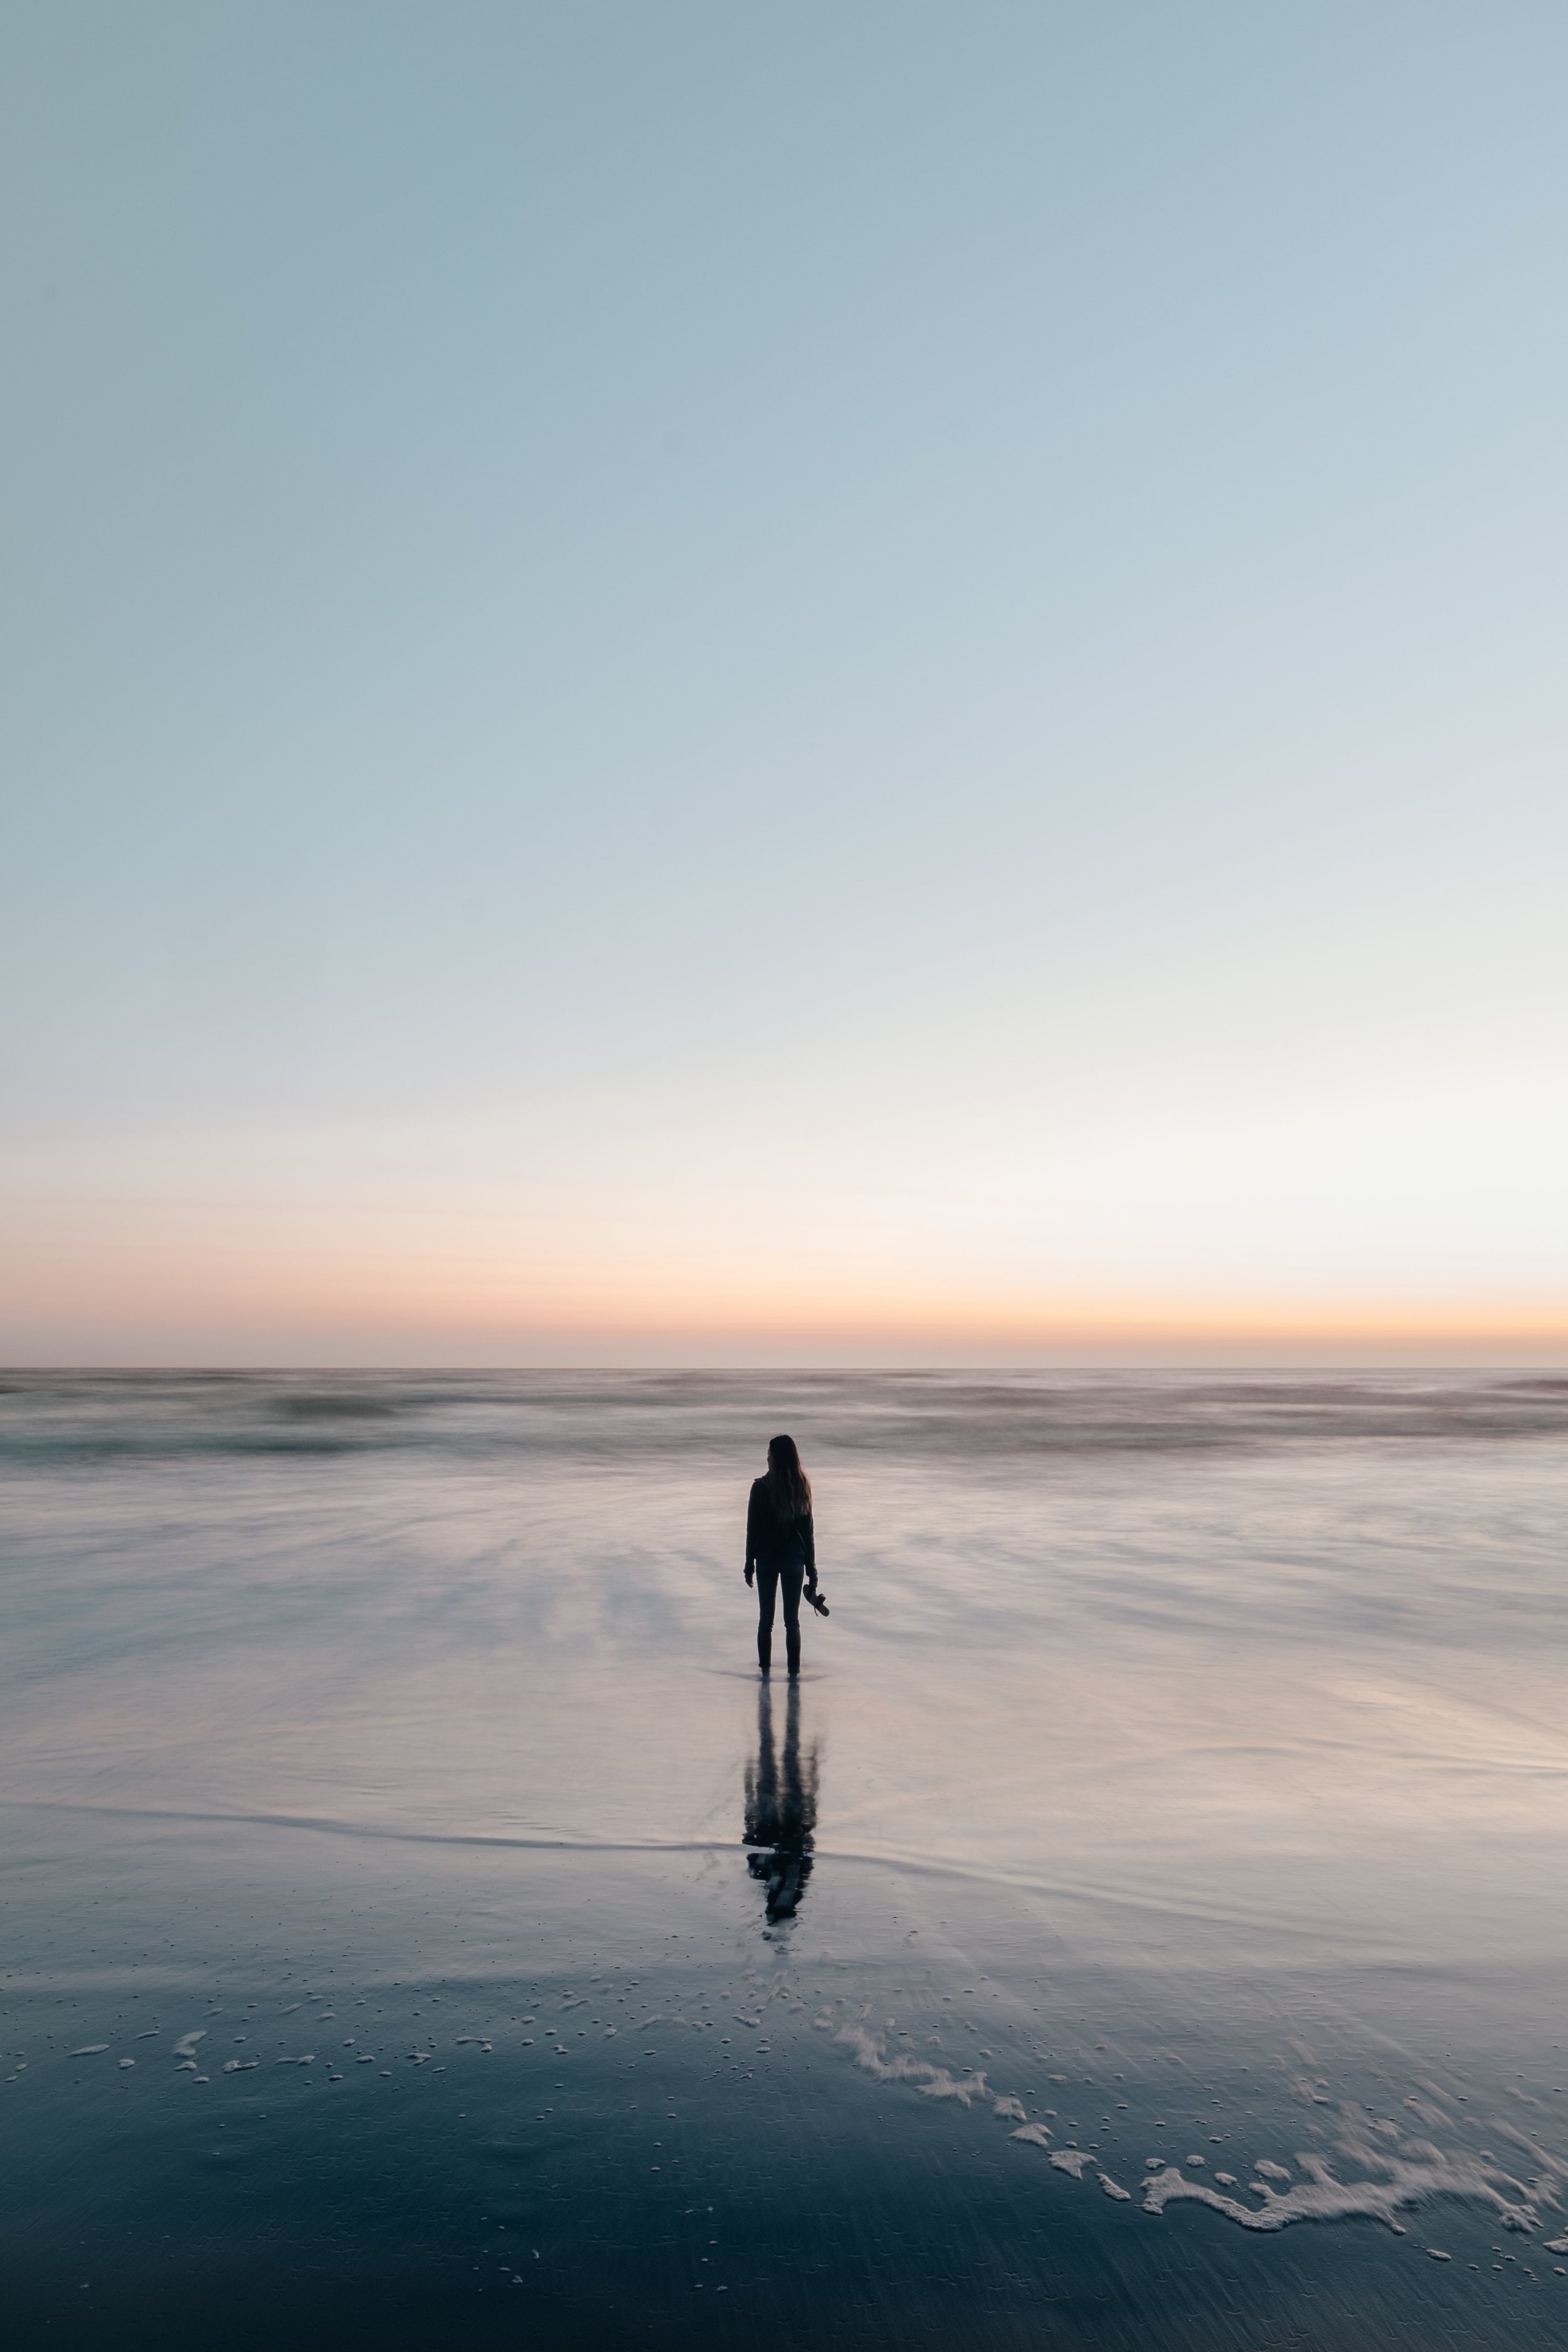 woman-wades-in-ocean-at-sunset_4460x4460.jpg